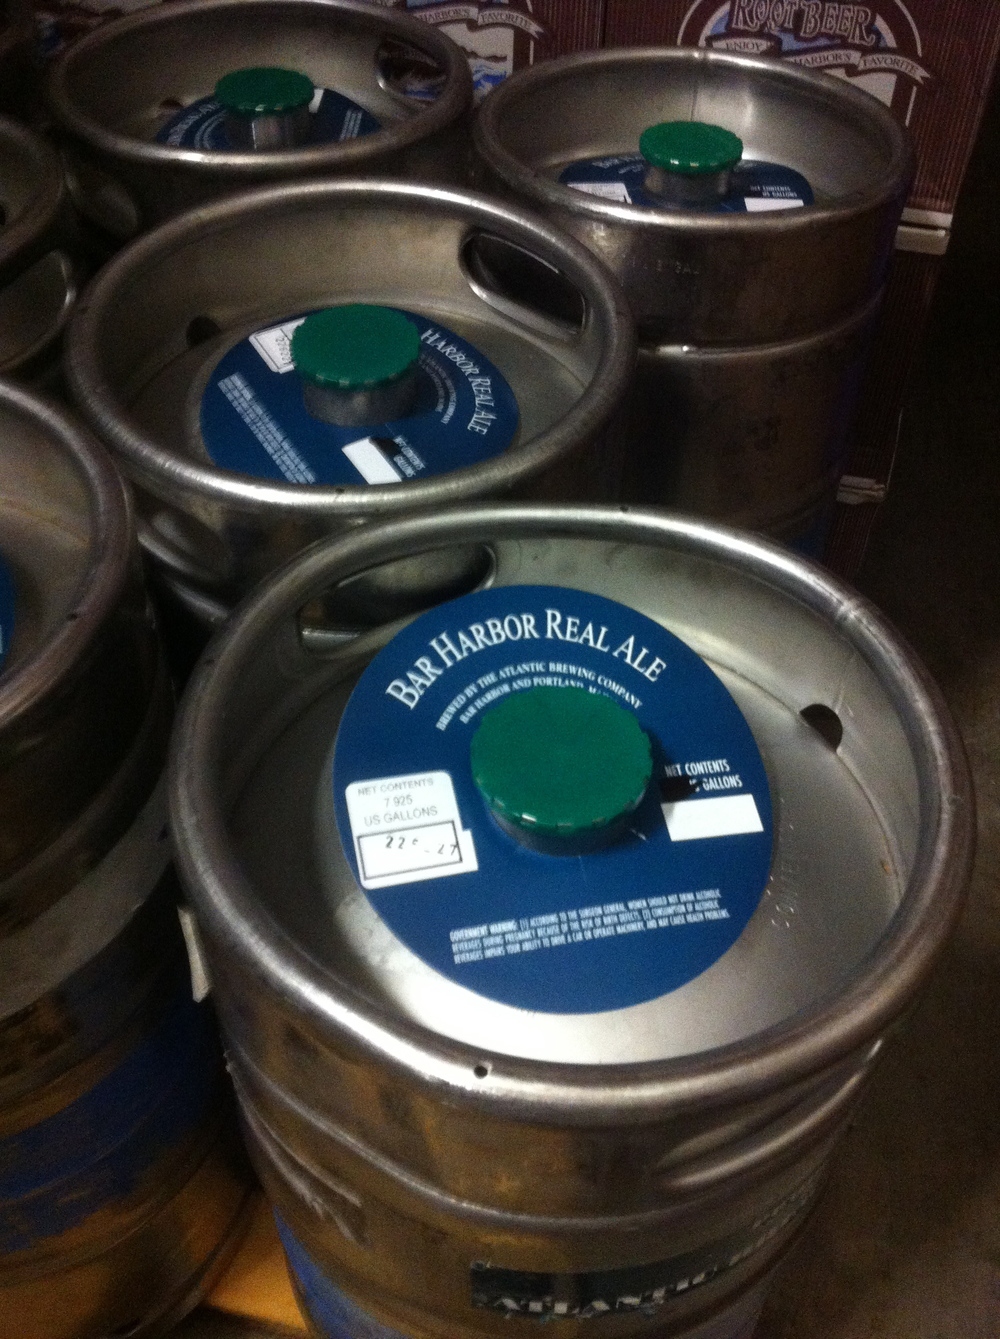 More Atlantic kegs, Bar Harbor